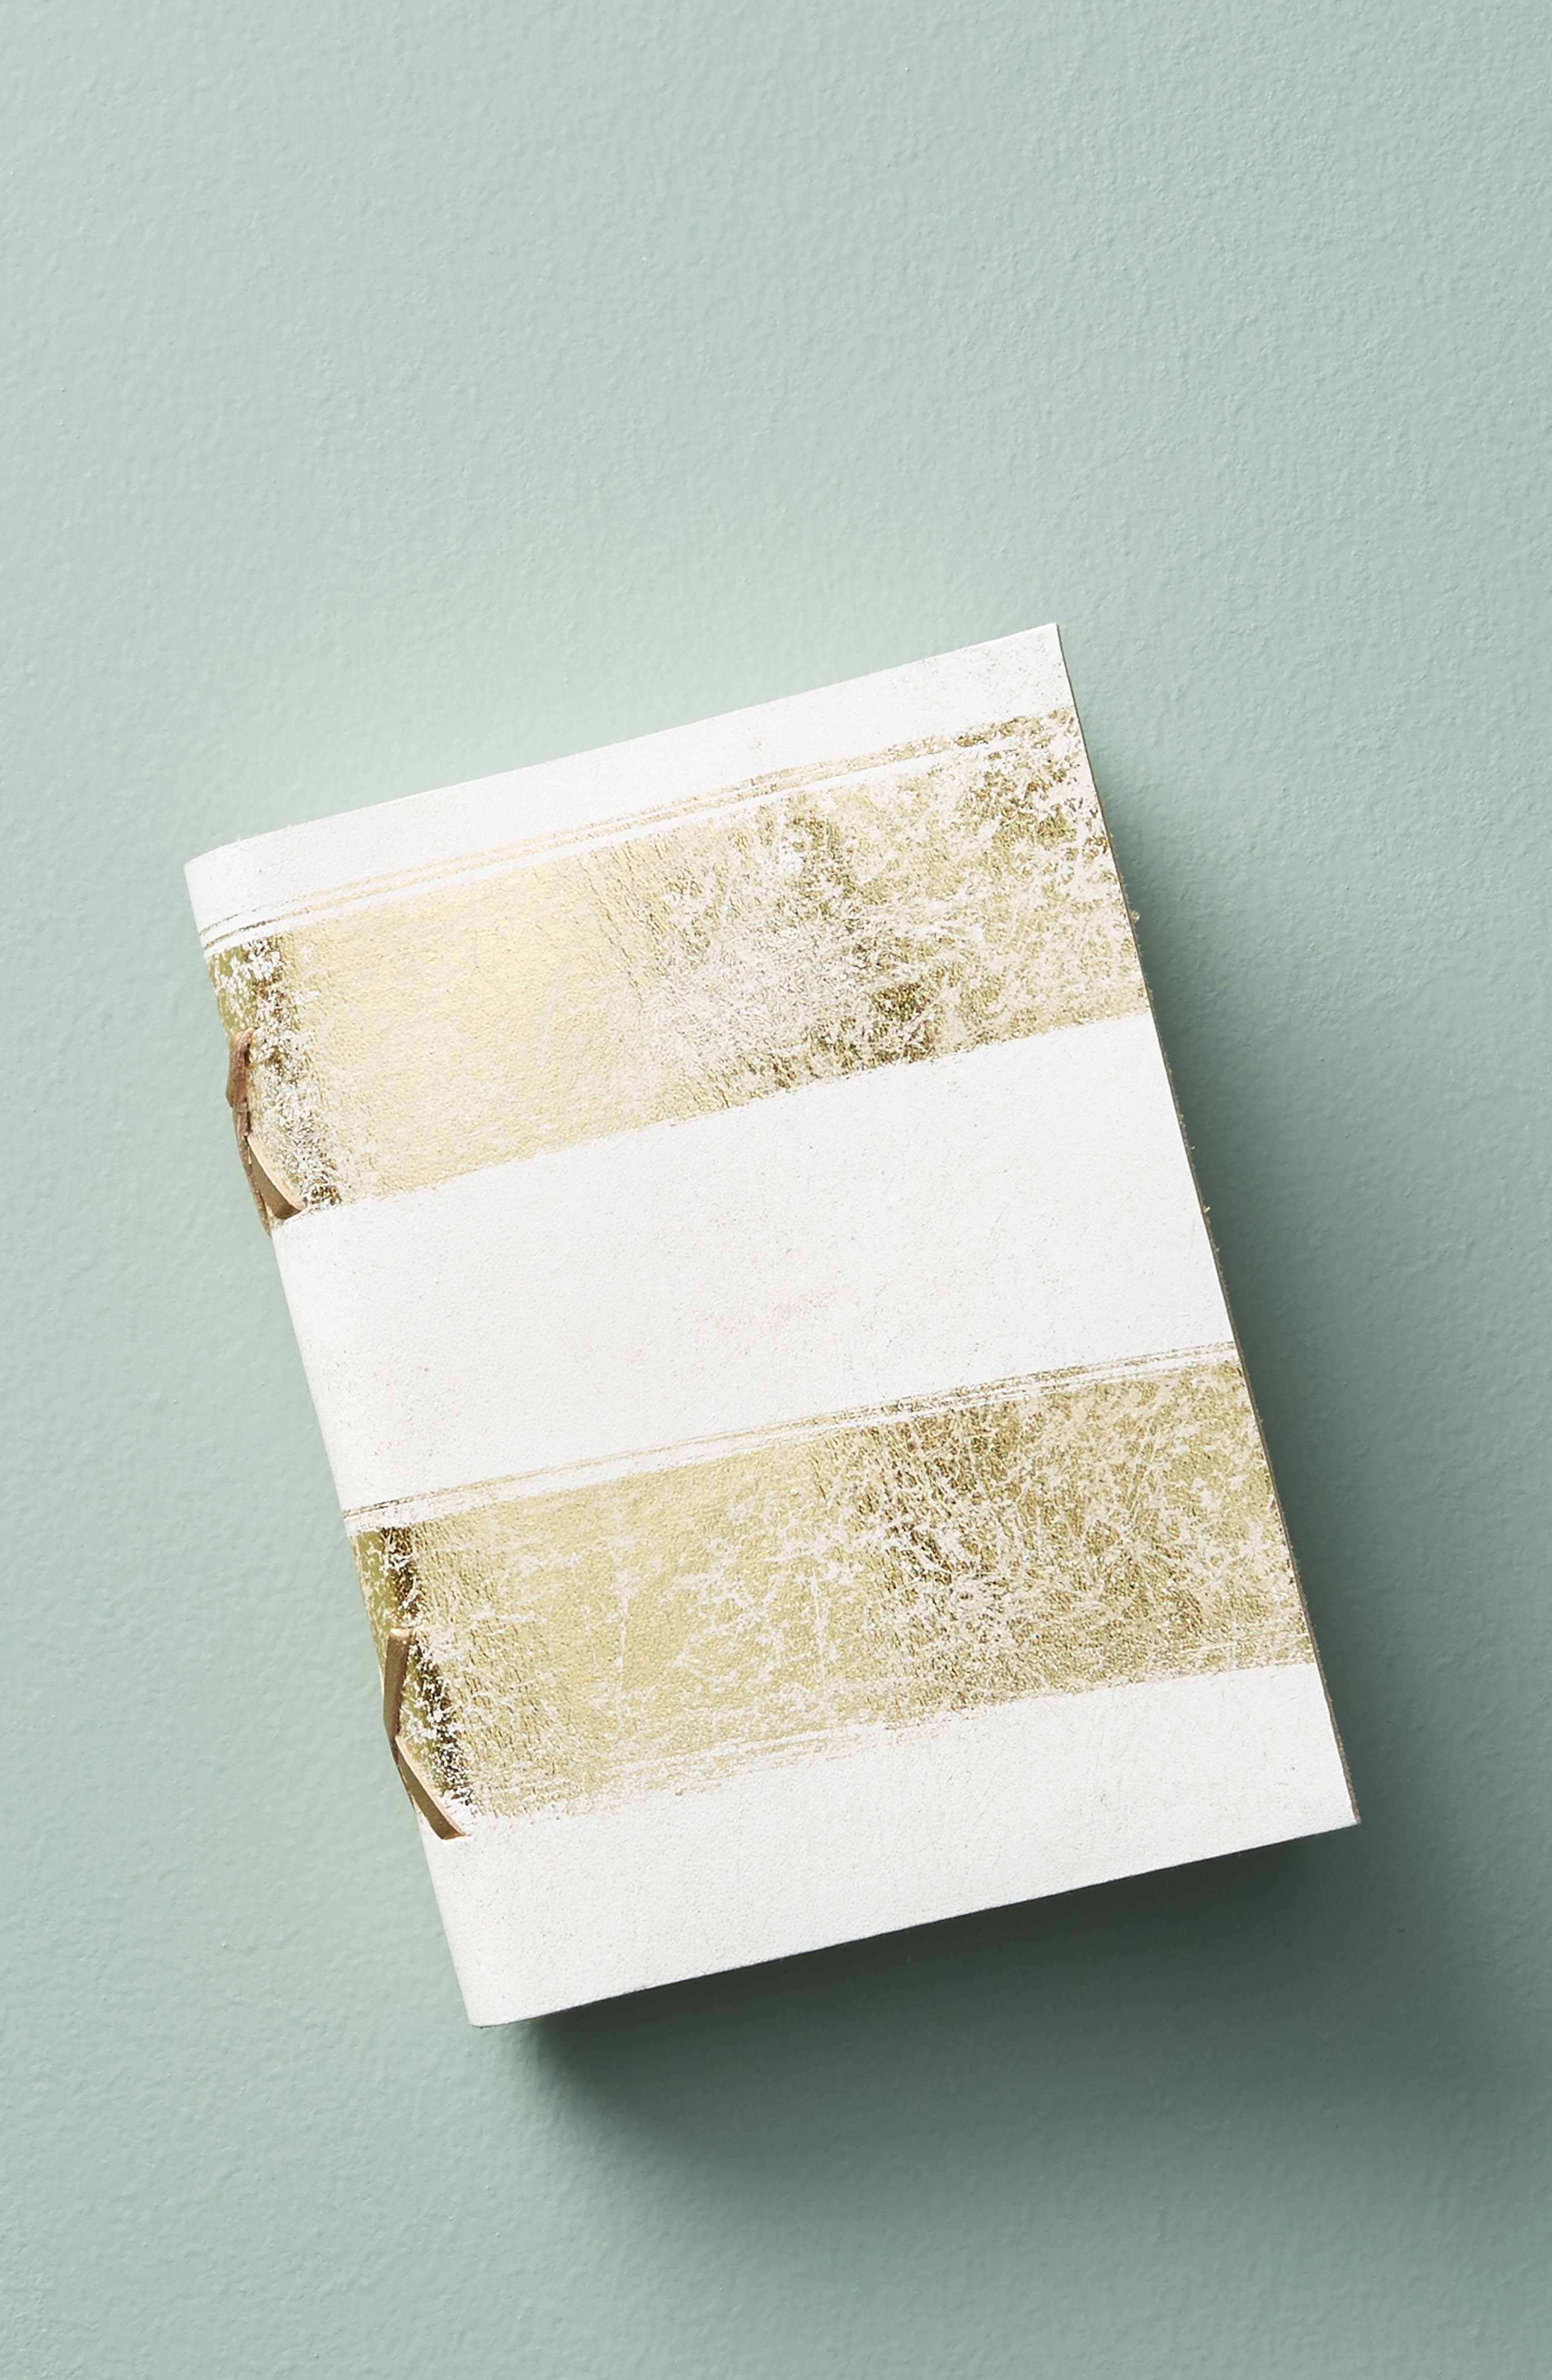 Gilded Leather Journal,                             Main thumbnail 1, color,                             White/ Gold - Small